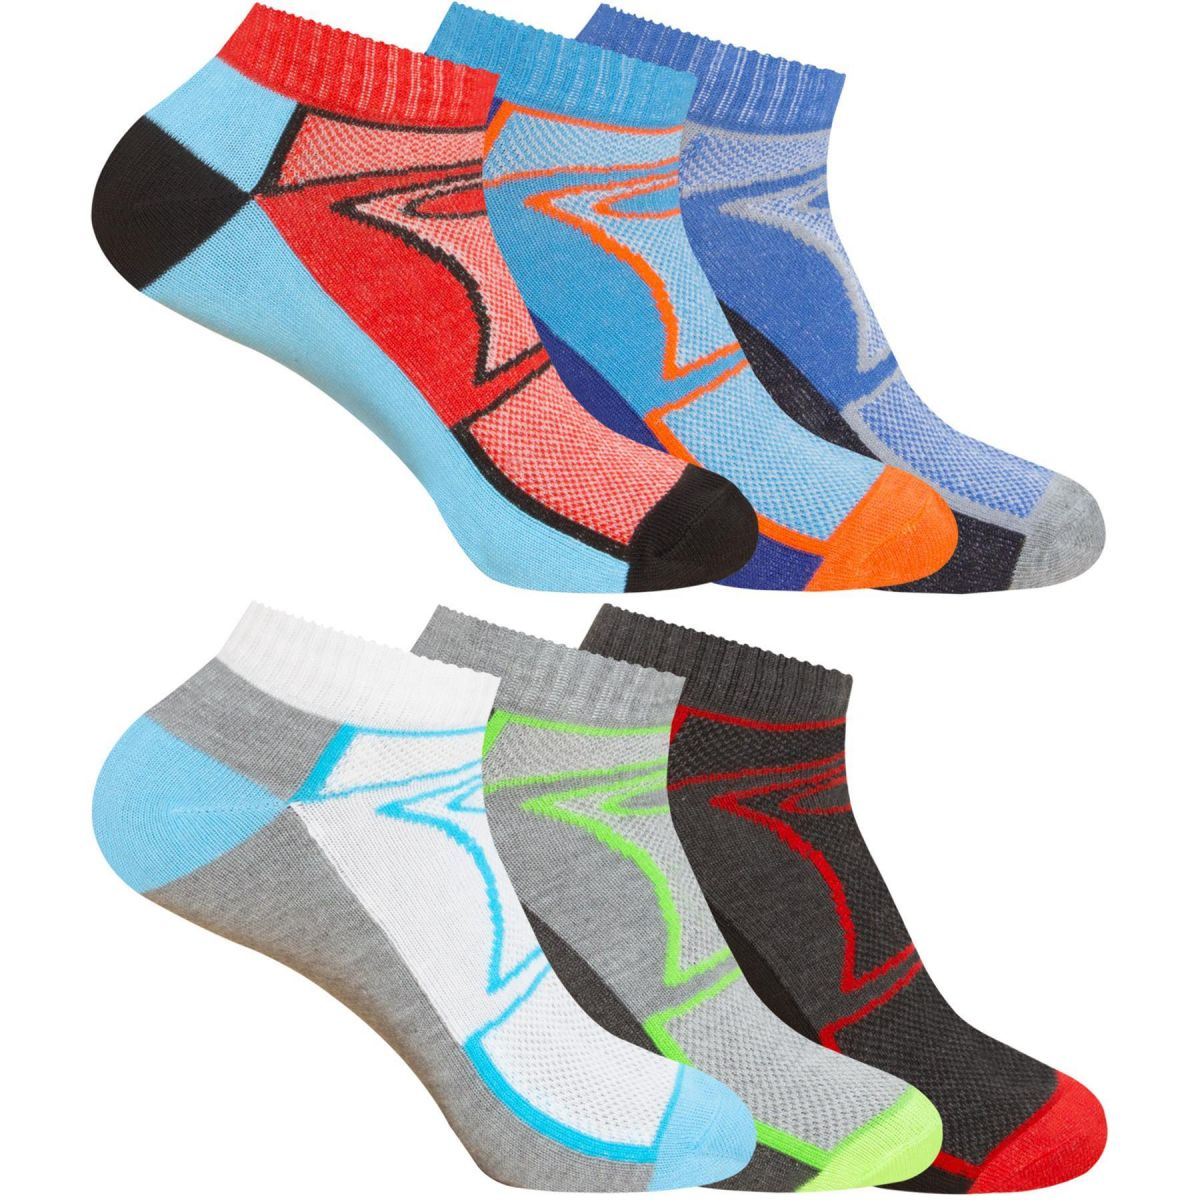 Accessories | Mens Trainers Socks 3, 6 Pairs & 7 Days Invisible Shoe Gym Ankle Liner Size 6-11, From £5.24, Guest Brand, in Multicolour | Raw Denim Outlet